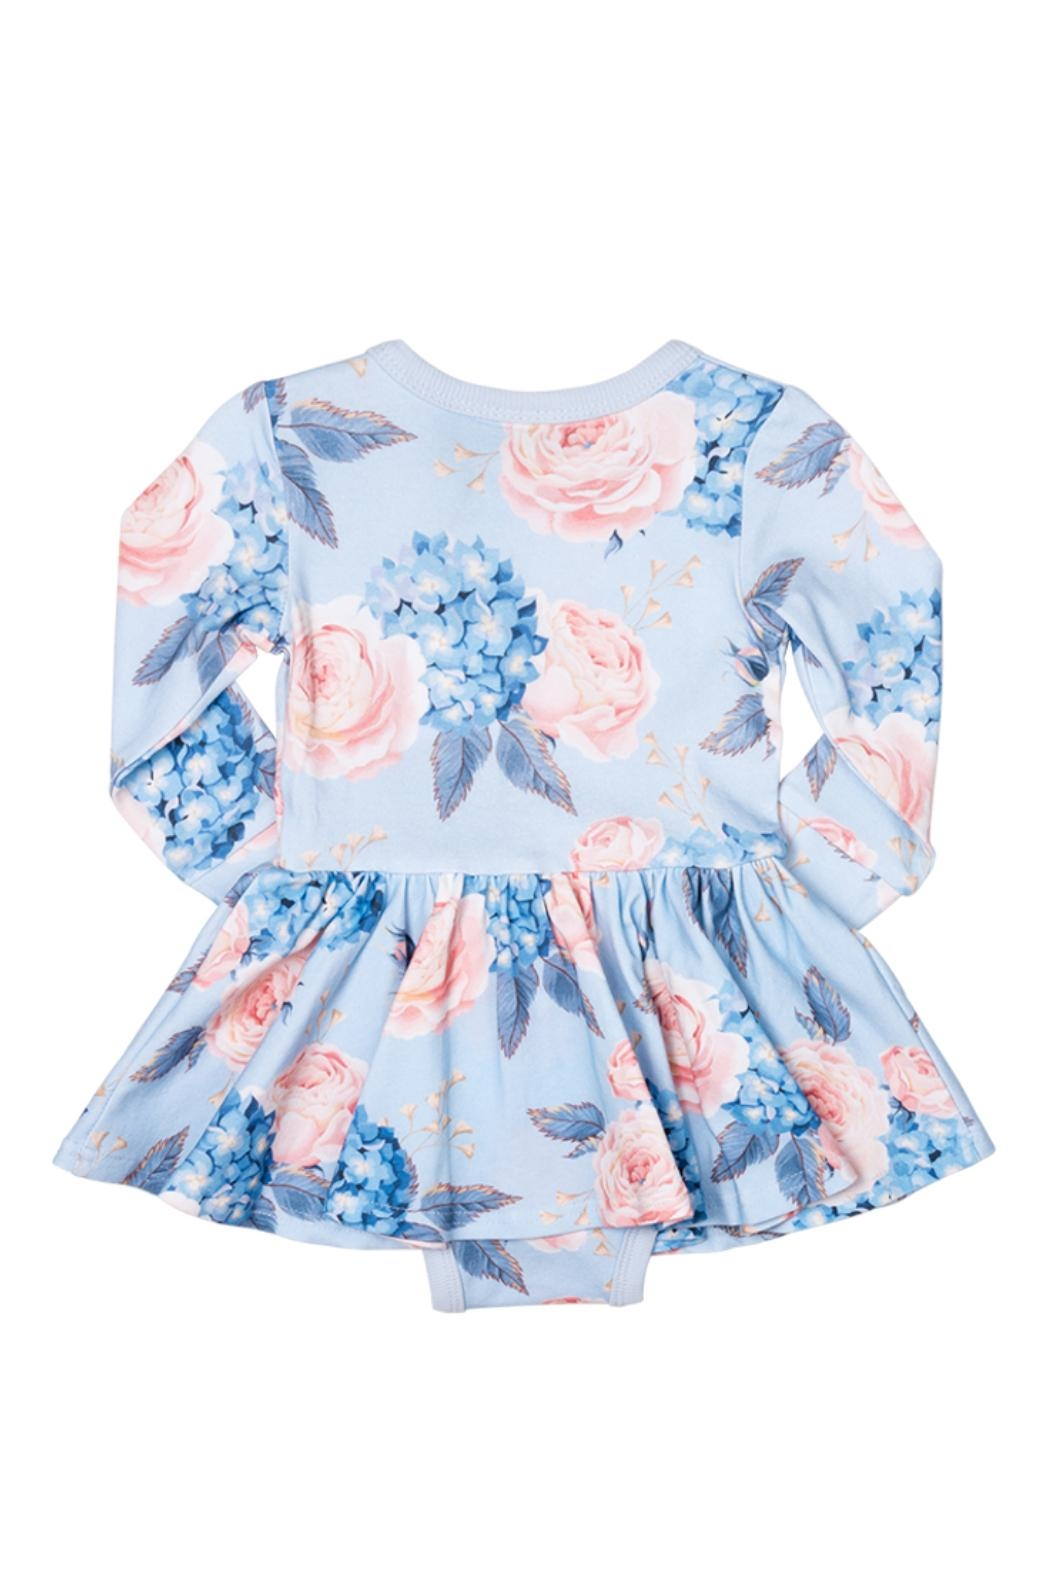 Rock Your Baby Hey Jude Dress - Front Full Image